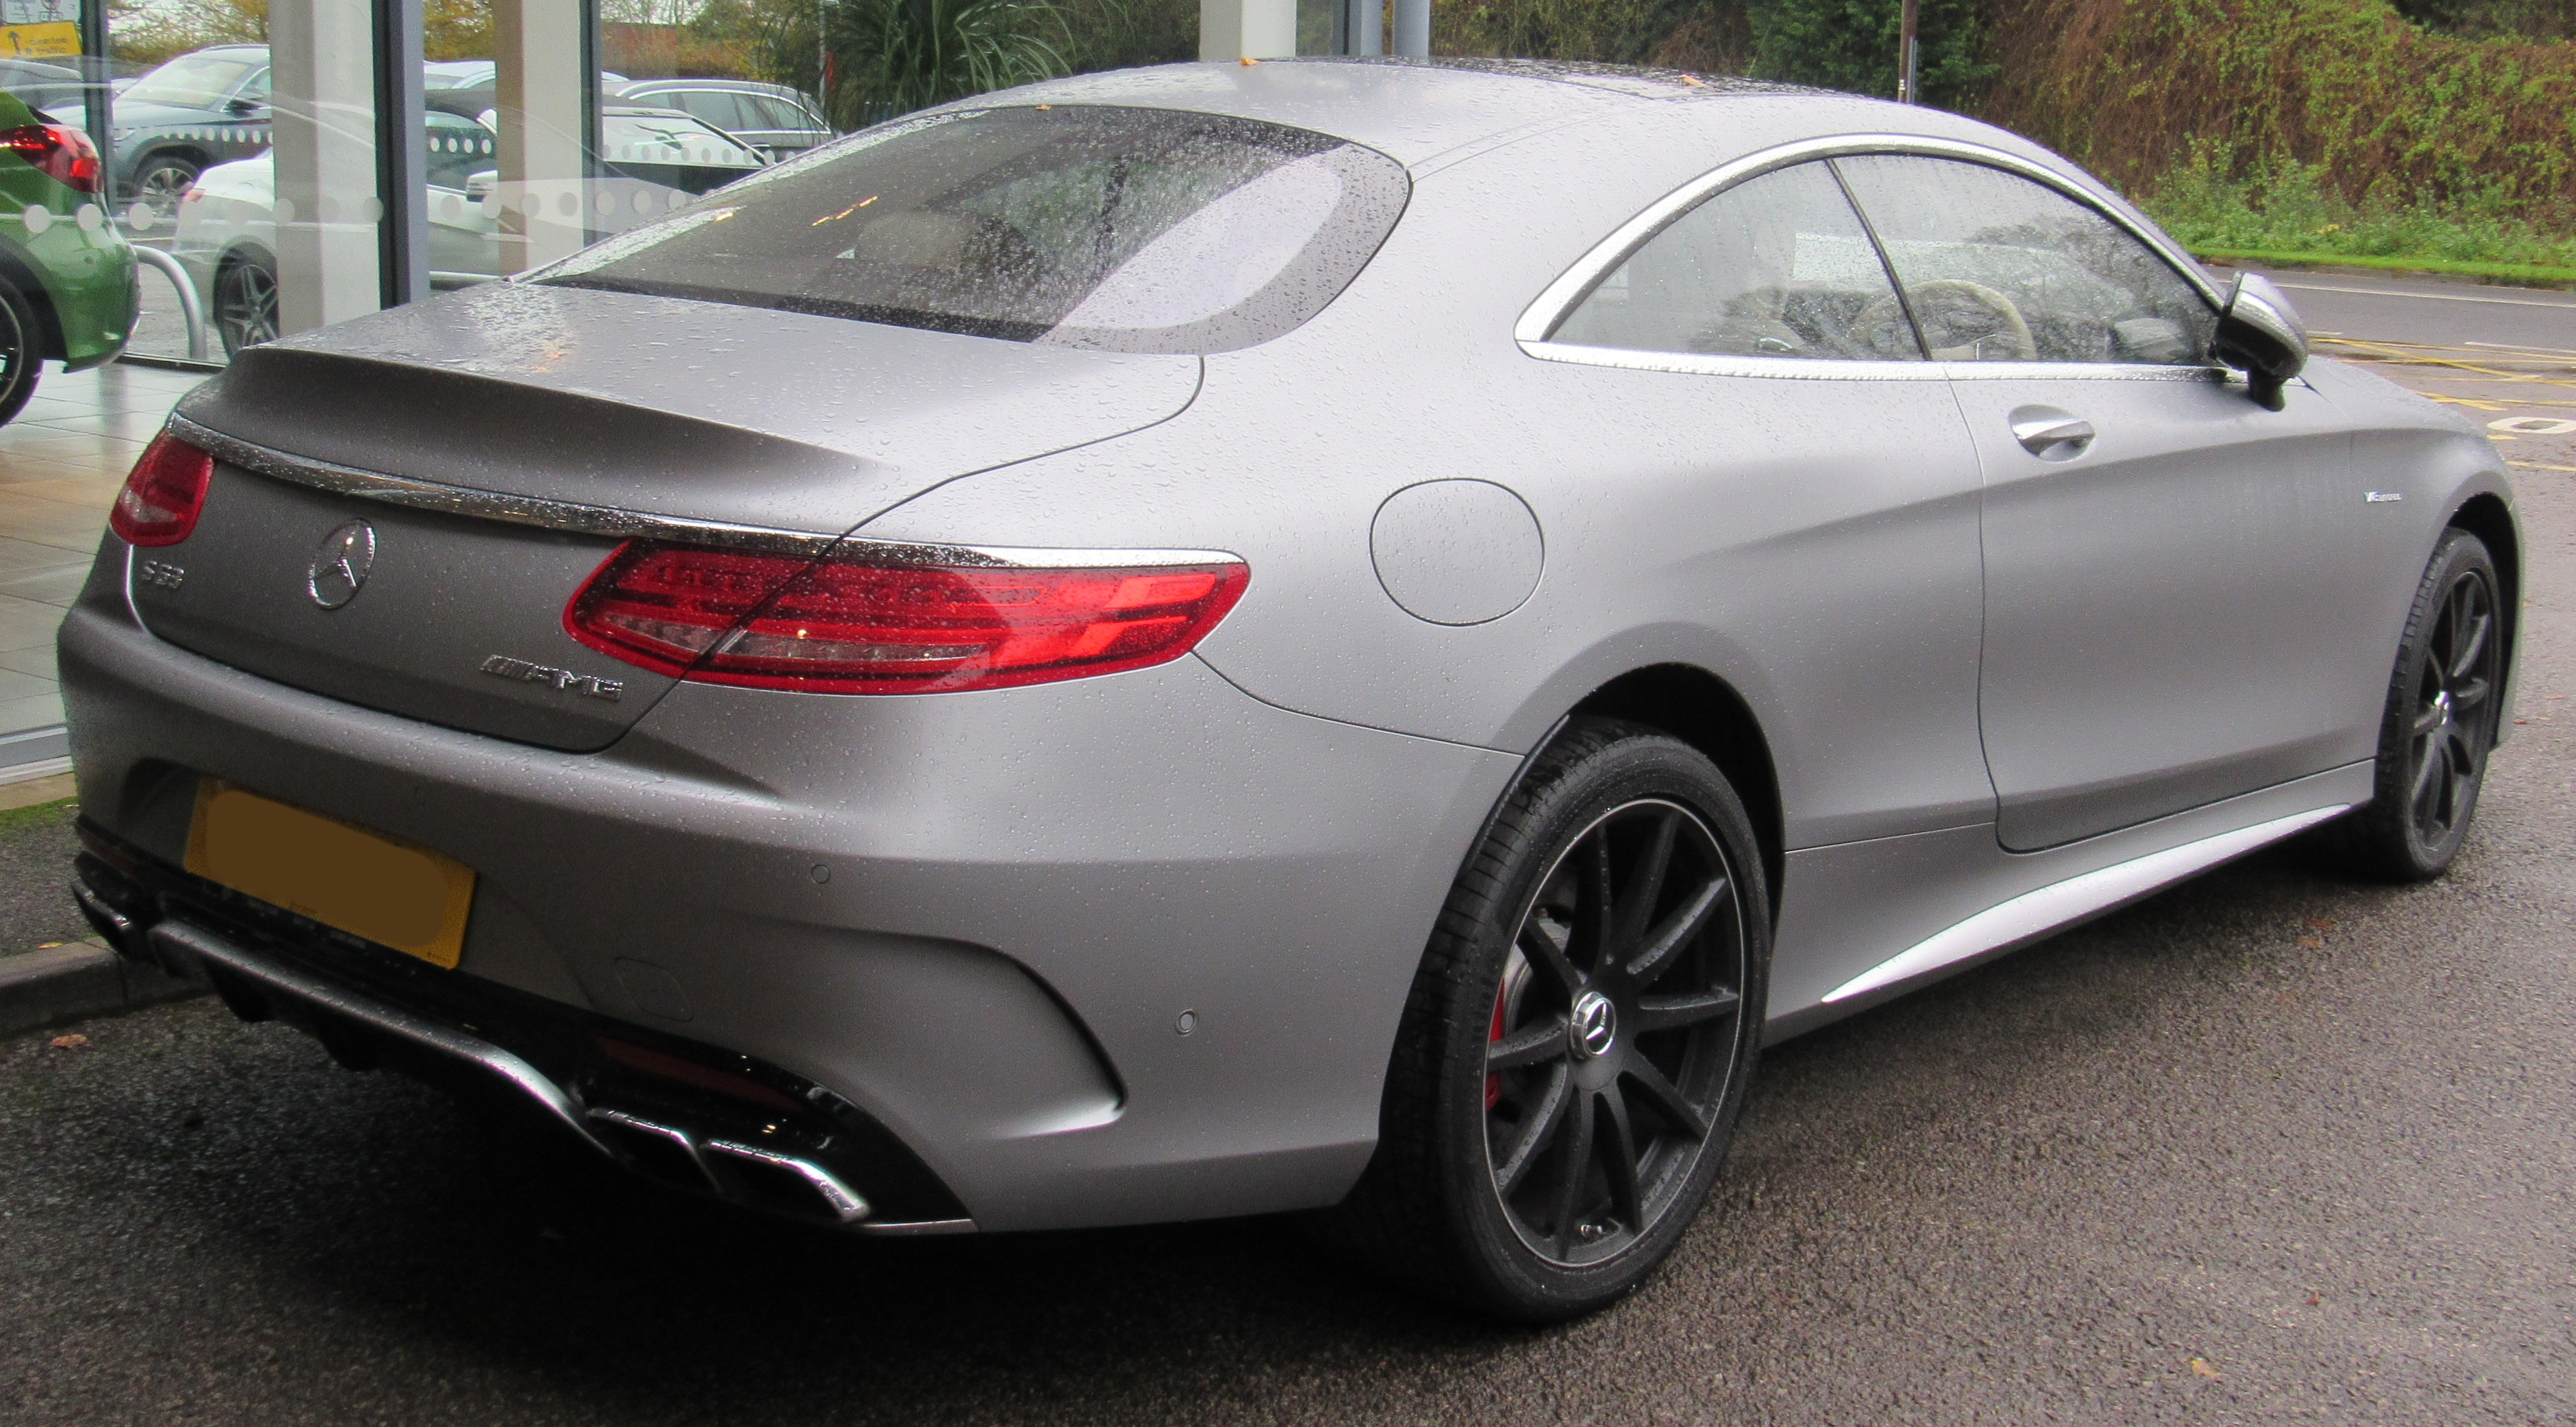 https://upload.wikimedia.org/wikipedia/commons/1/14/2015_Mercedes-Benz_S63_AMG_Coupe_Automatic_5.5_Rear.jpg